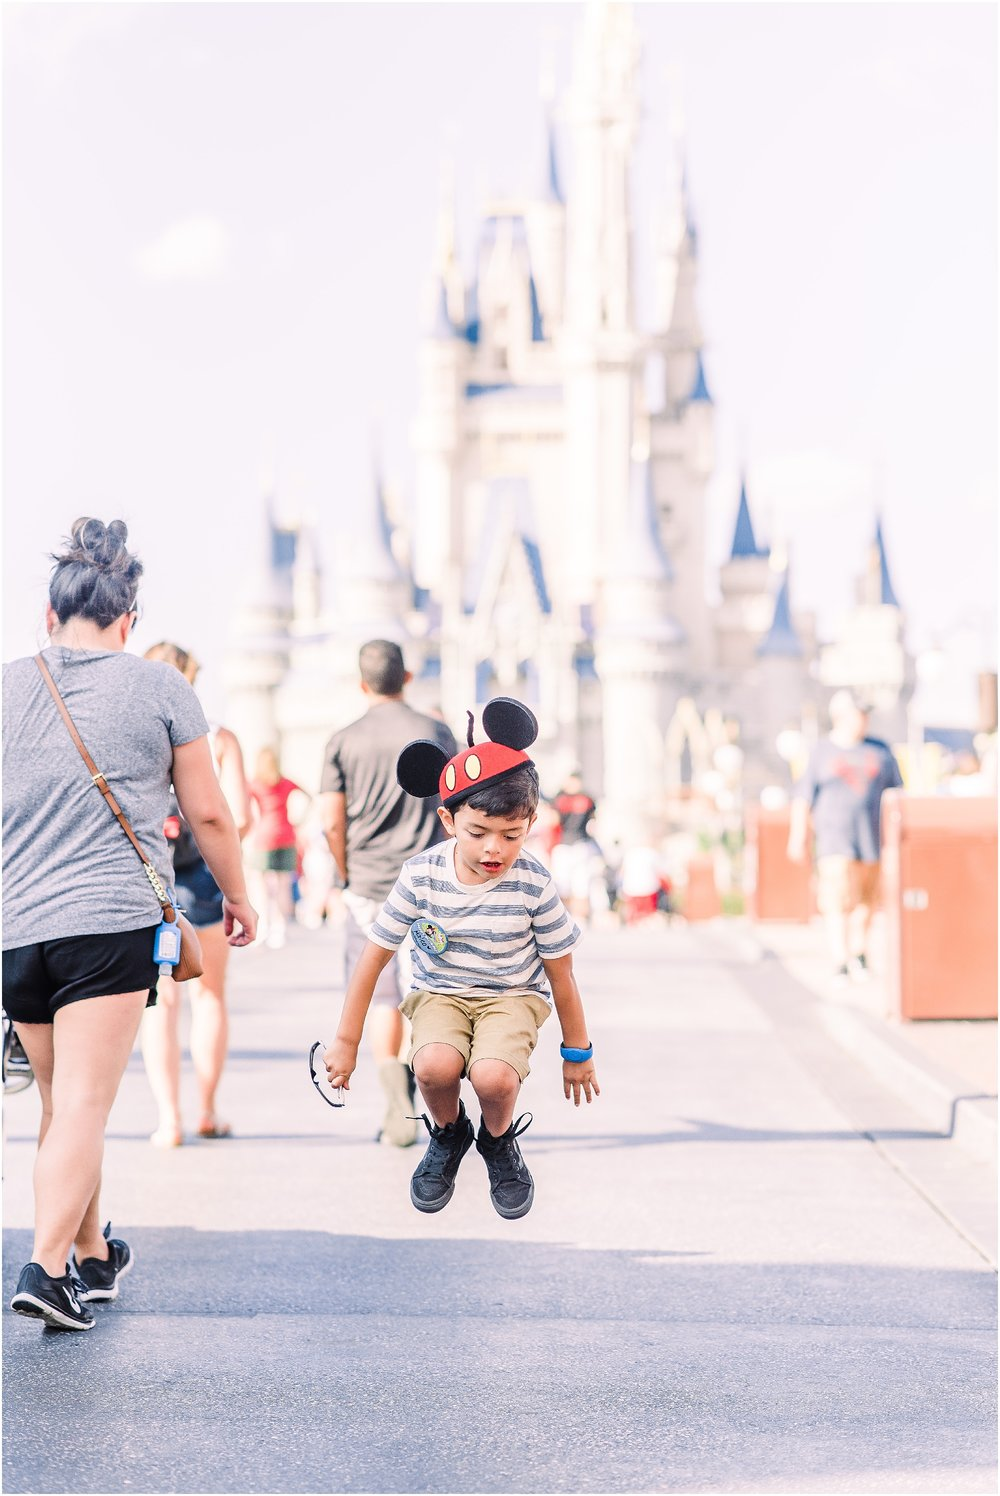 Ventura-California-and-Tallahassee-Florida-Wedding-Photographer-Mateo-turns-five-at-Disney-World-in-Orlando-Florida_0007.jpg